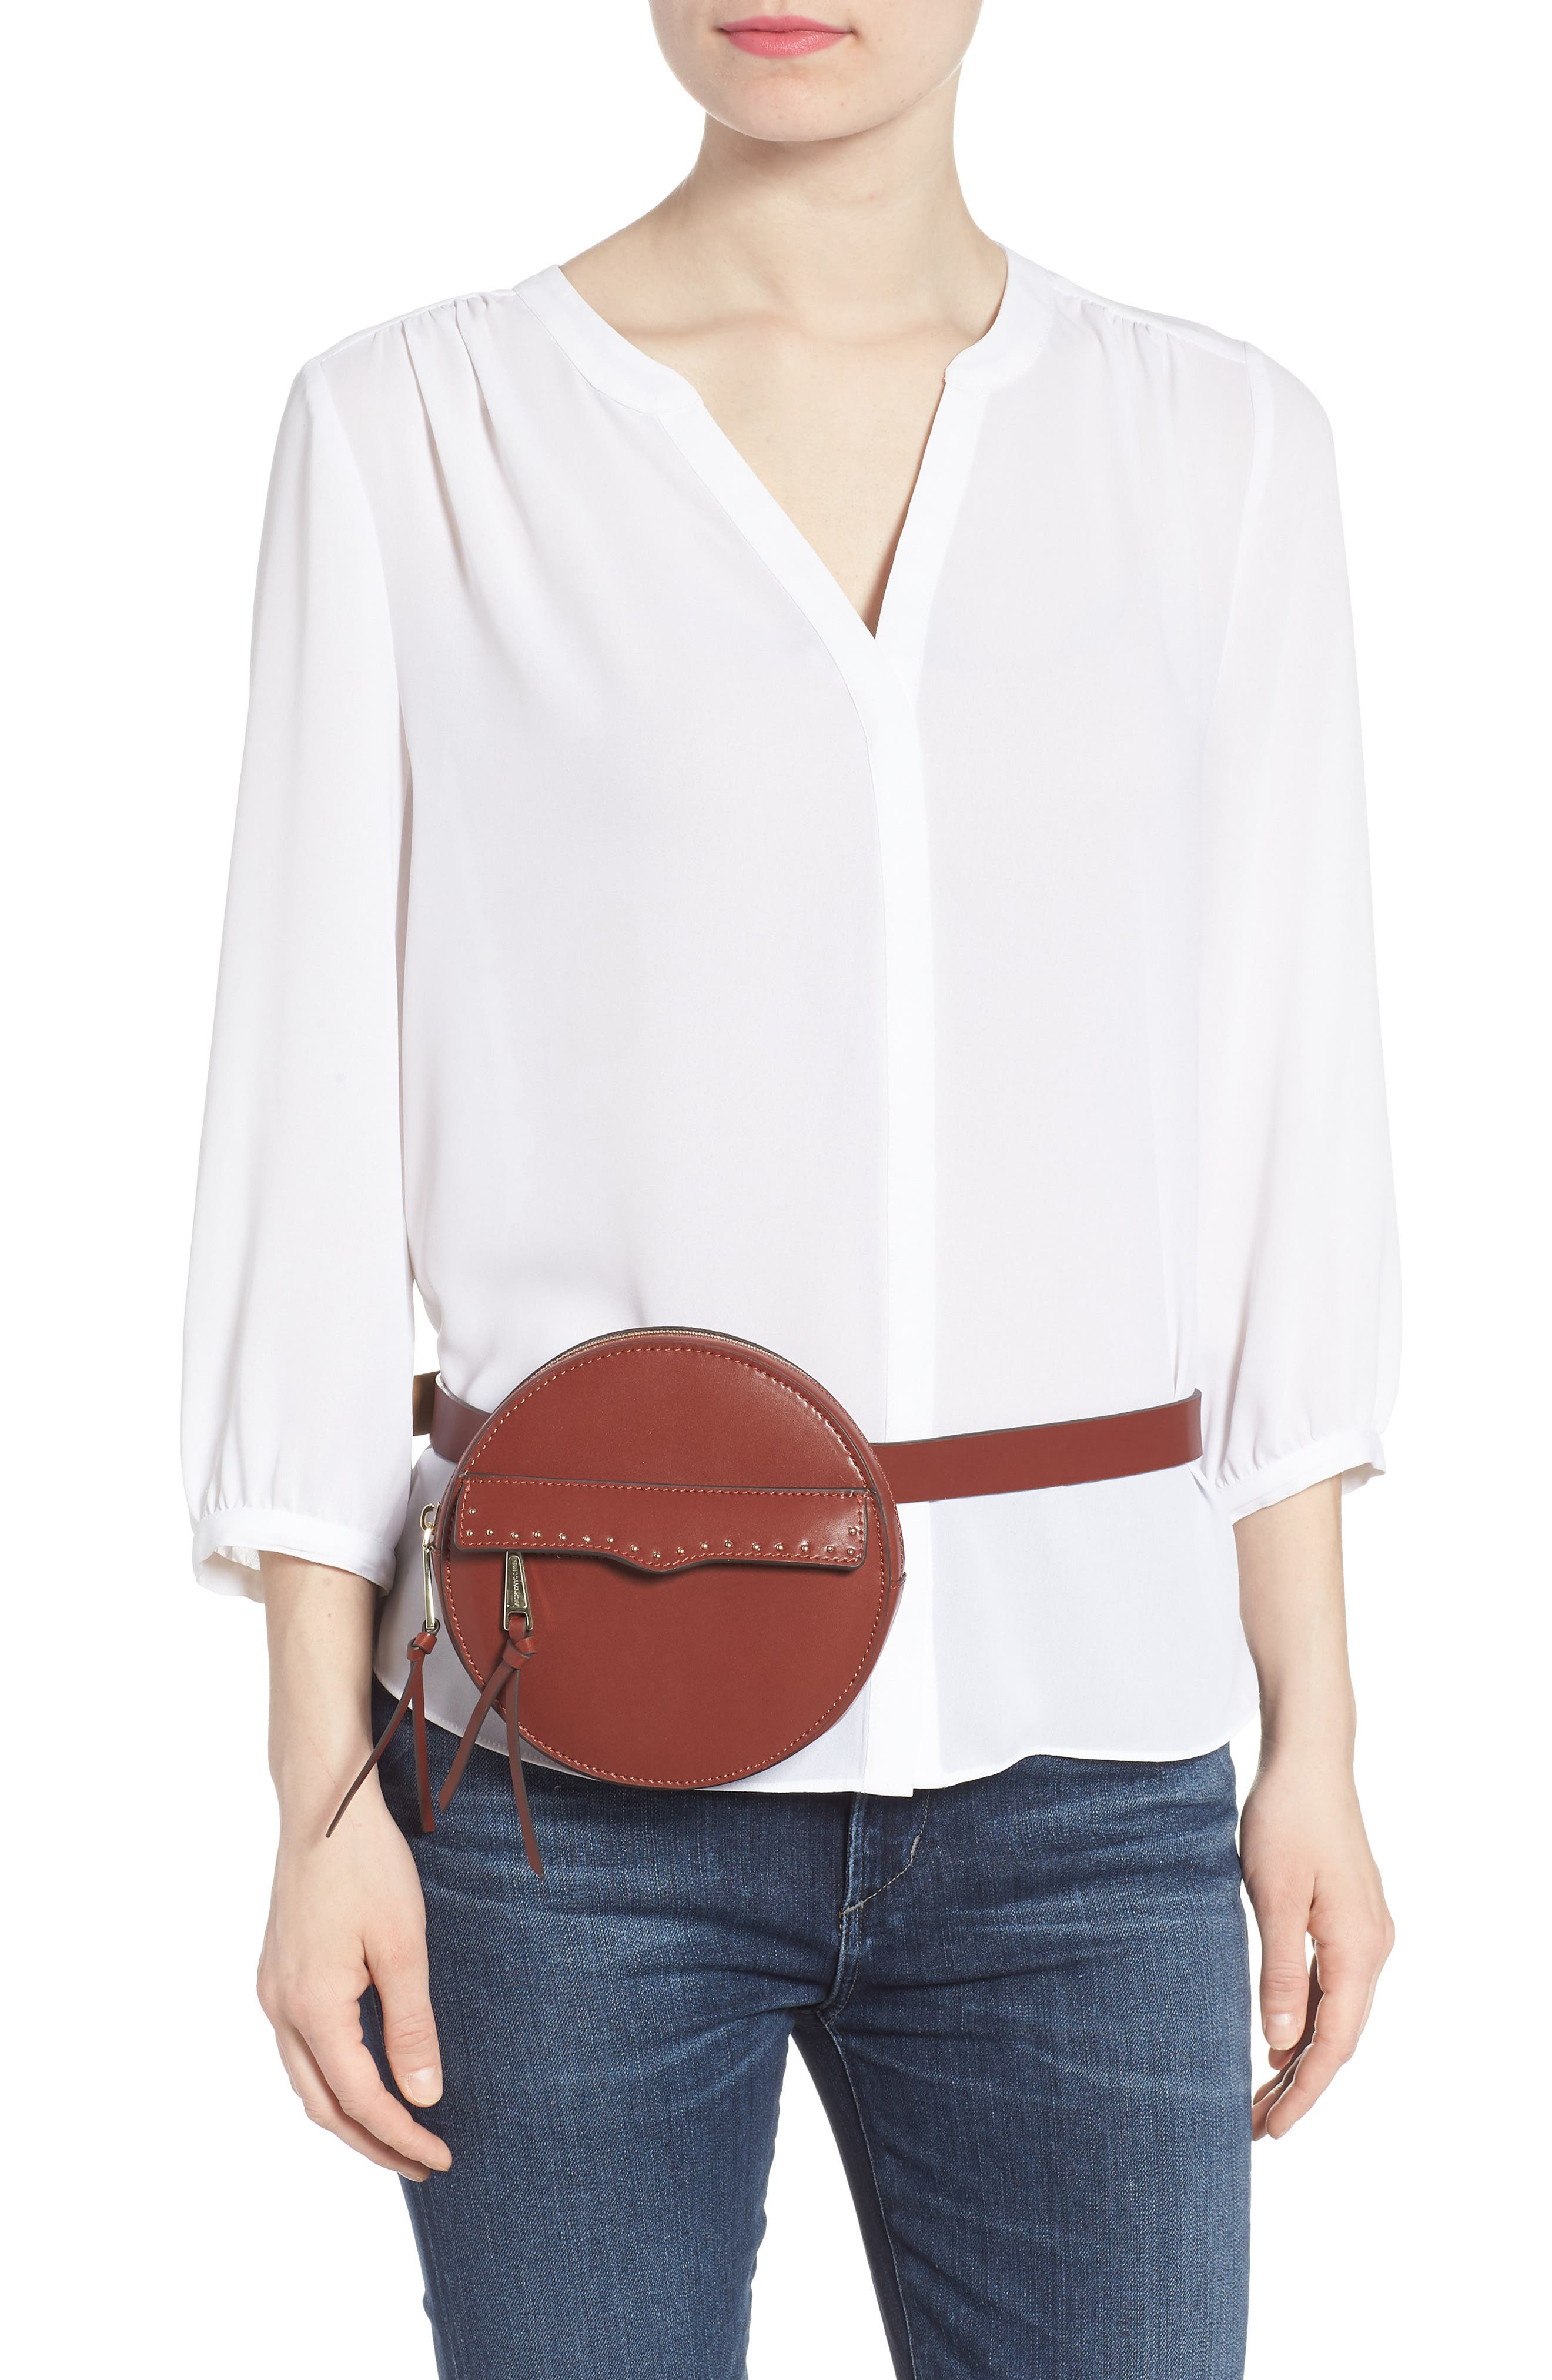 REBECCA MINKOFF, Lucy Leather Belt Bag, Alternate thumbnail 2, color, LUGGAGE